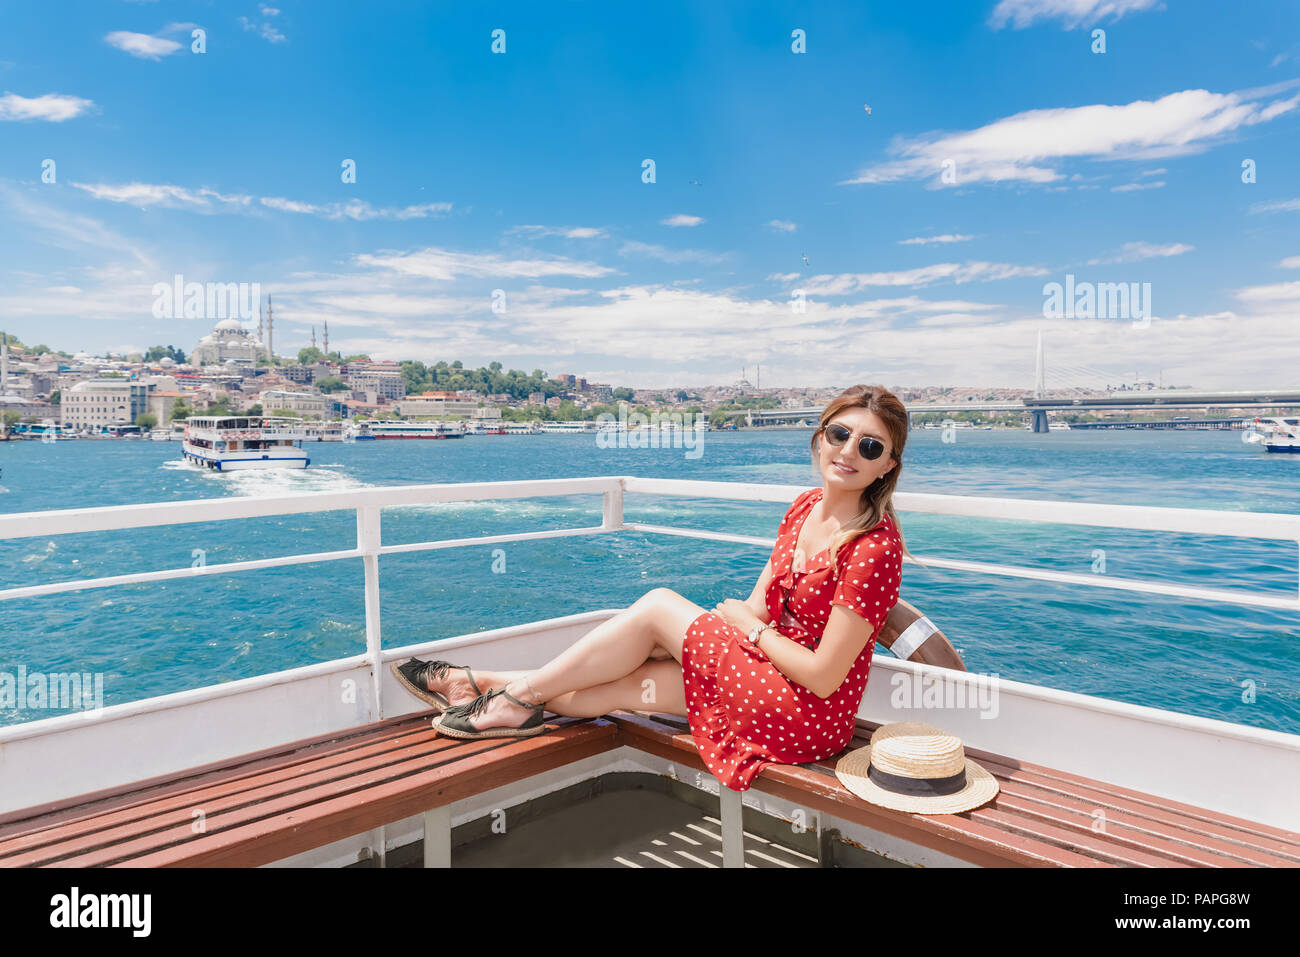 Beautiful woman in red dress sits on a ferry with landscape view of Istanbul on background. Stock Photo